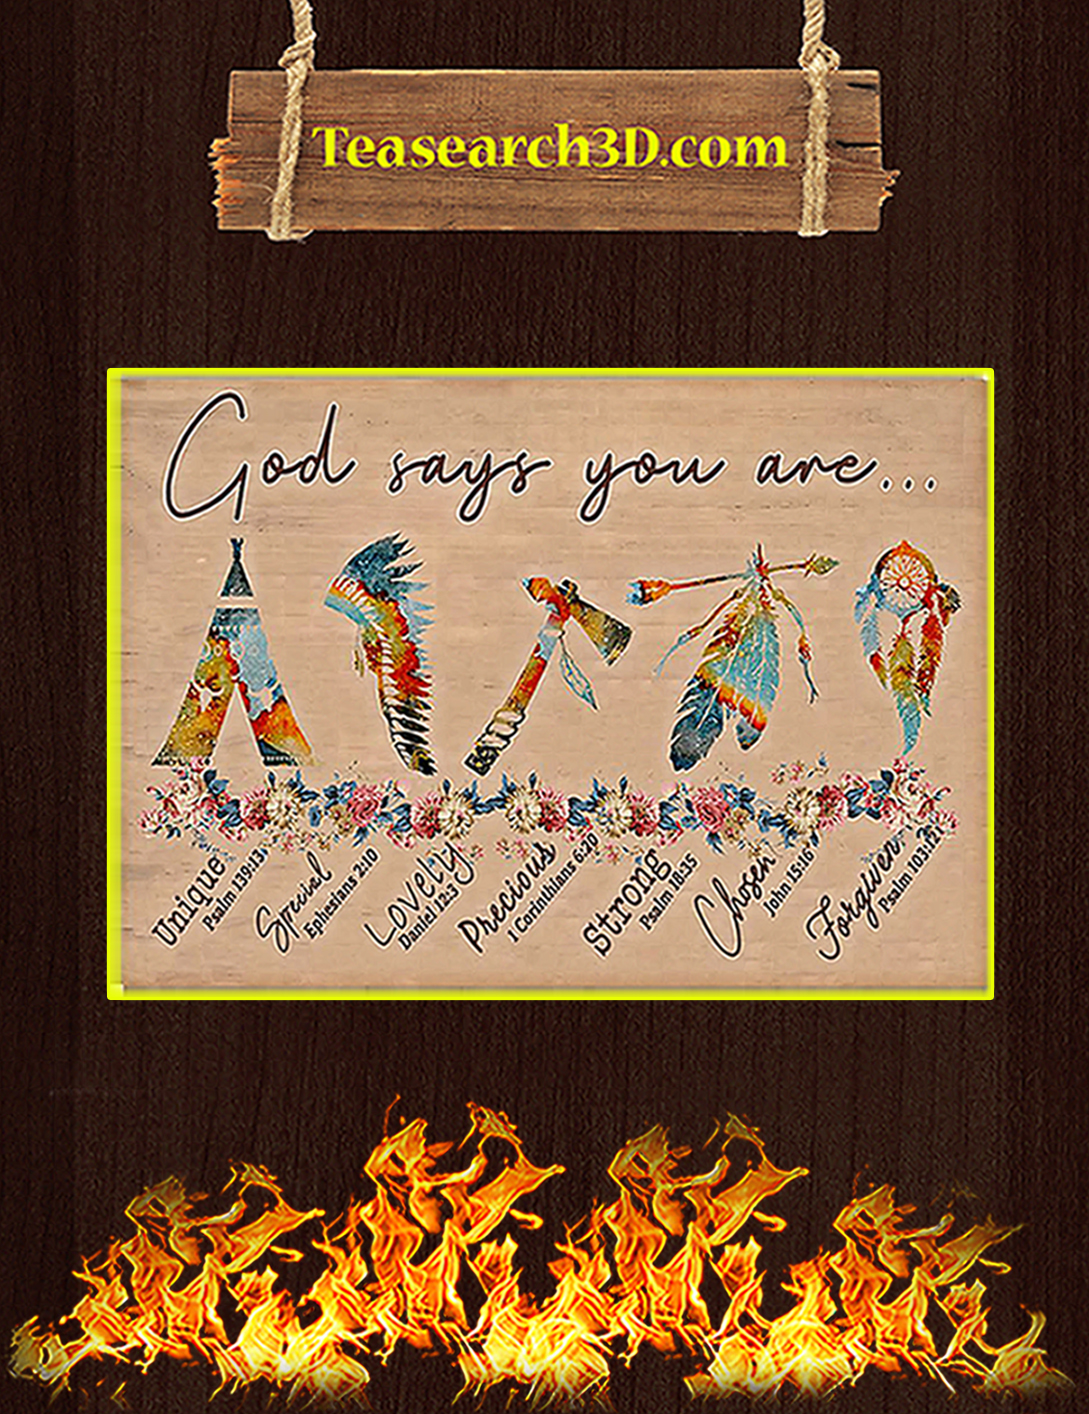 Native god says you are poster A2